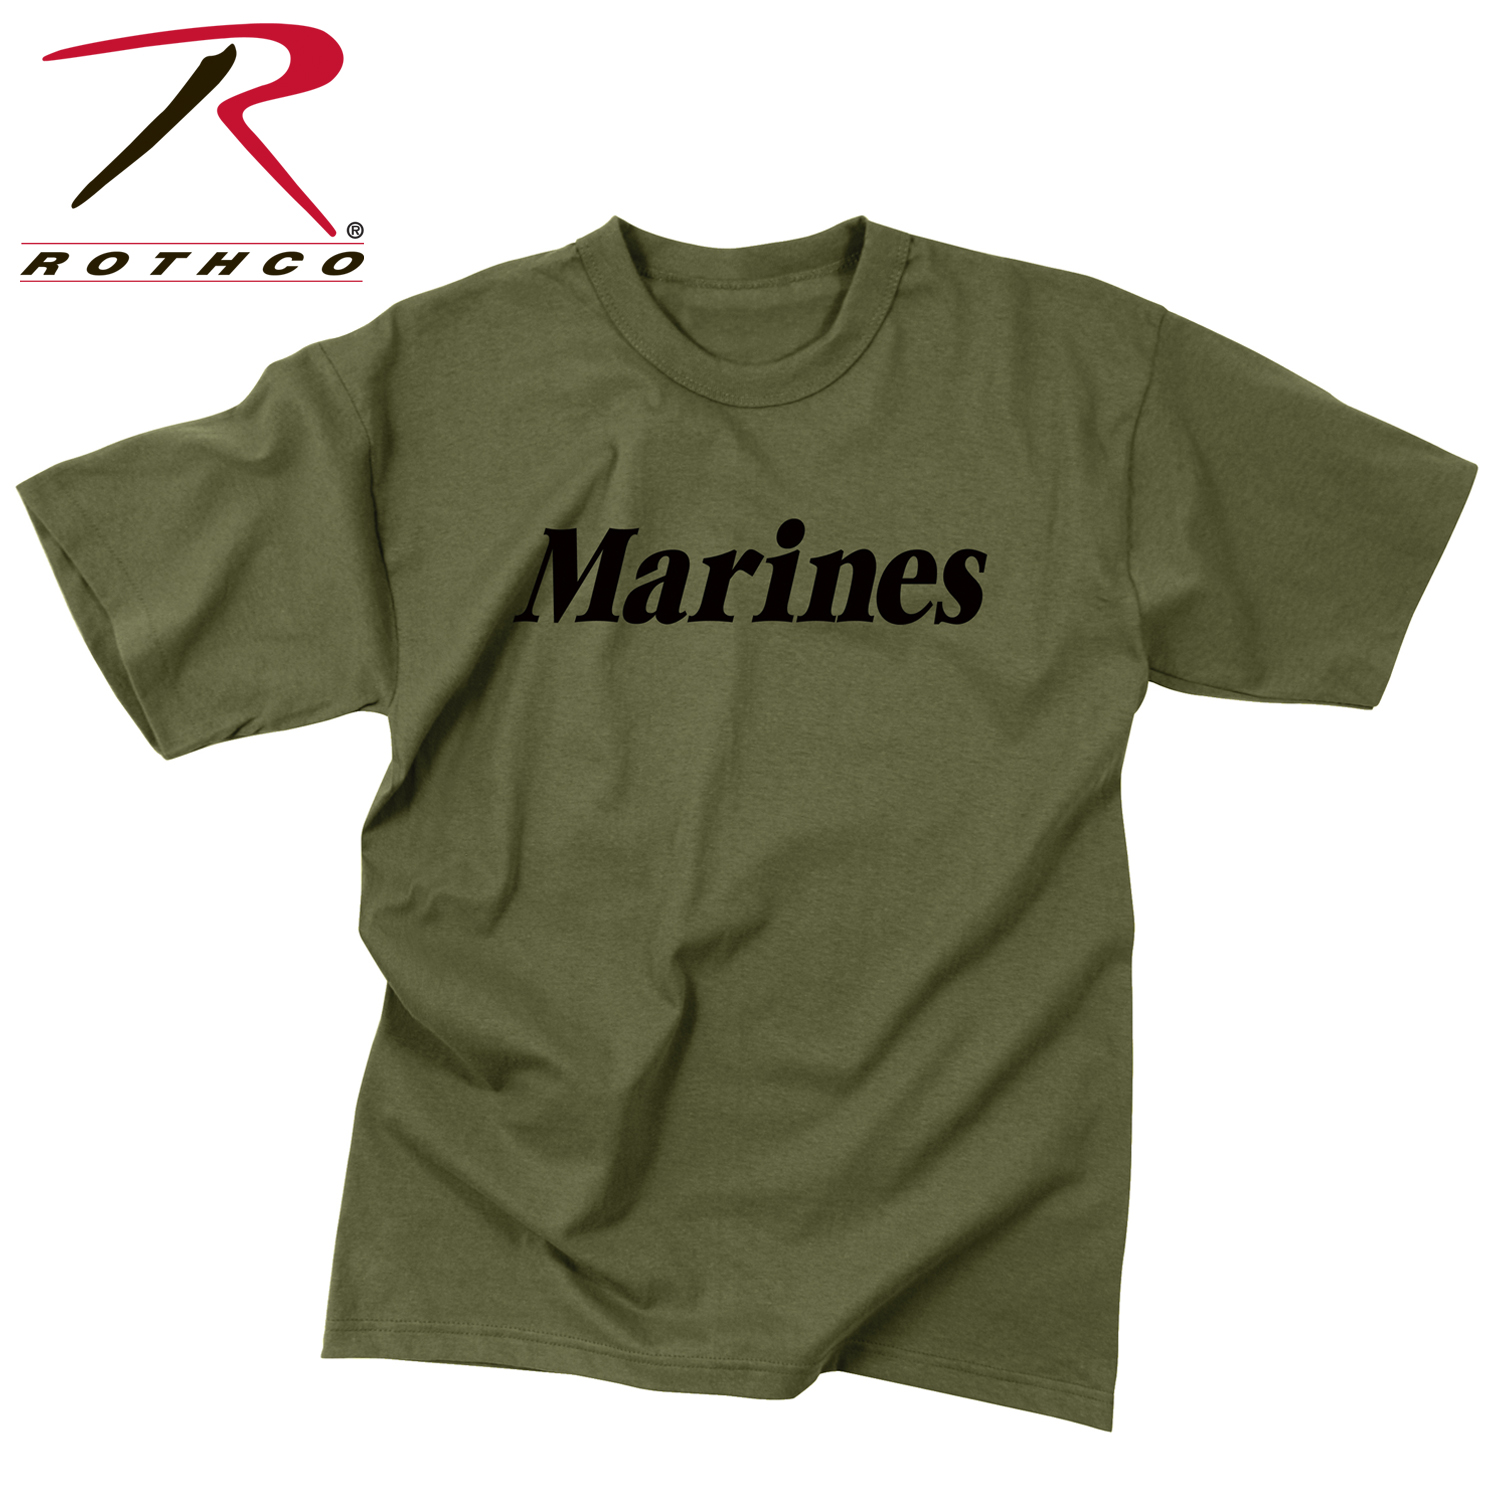 Usmc workout shirts berry blog for Military t shirt companies